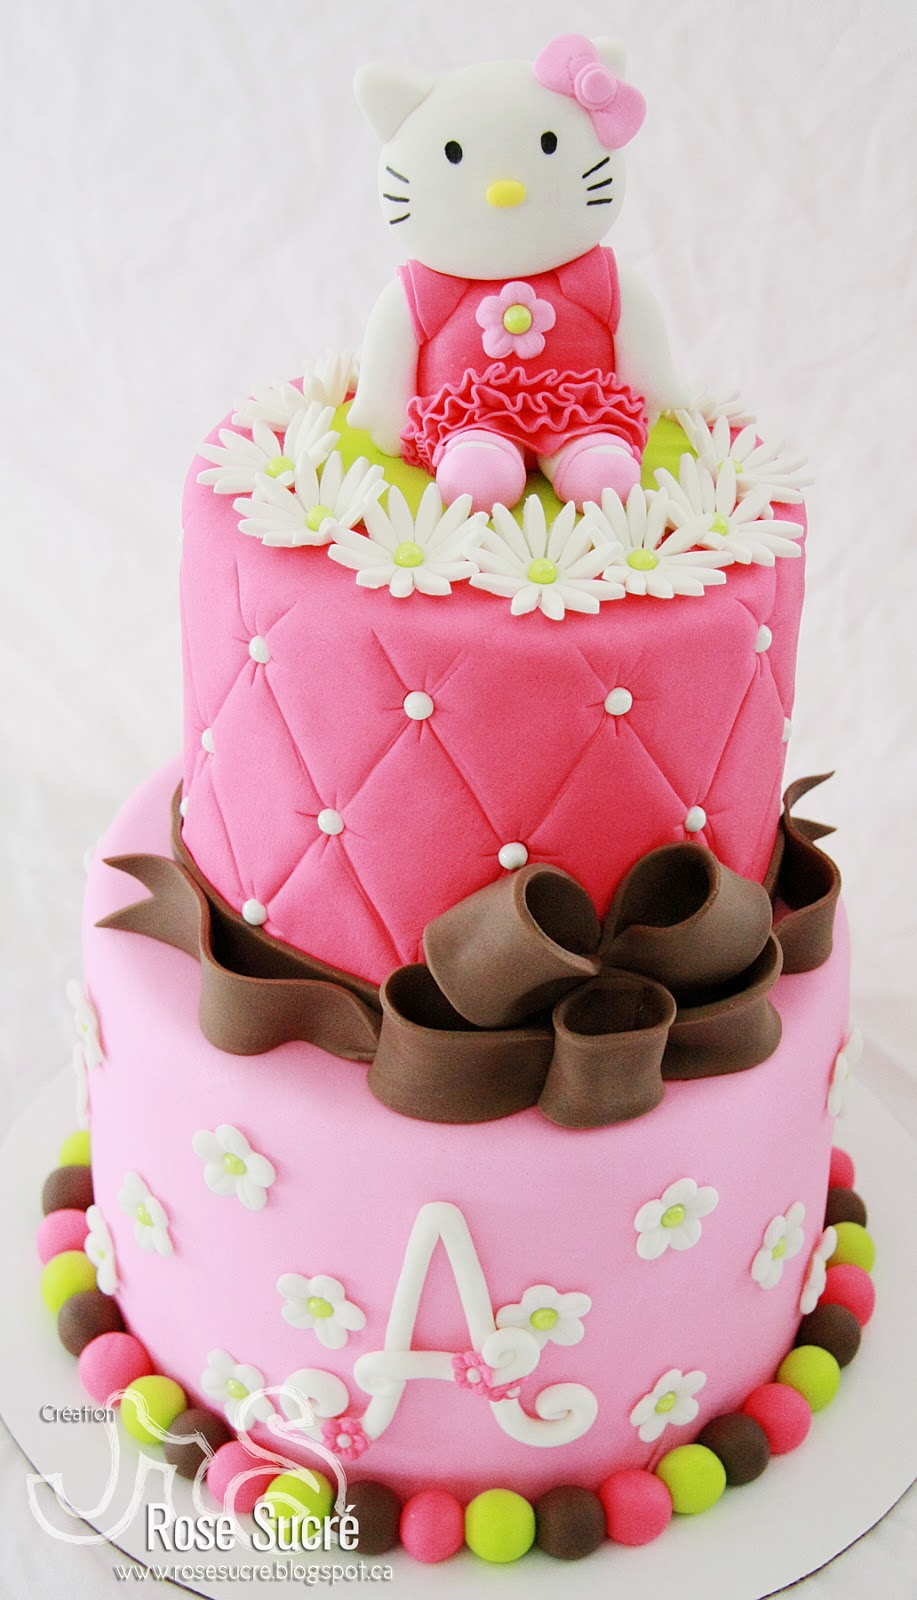 Rose sucr g teau hello kitty 2 tages - Gateau de couche hello kitty ...